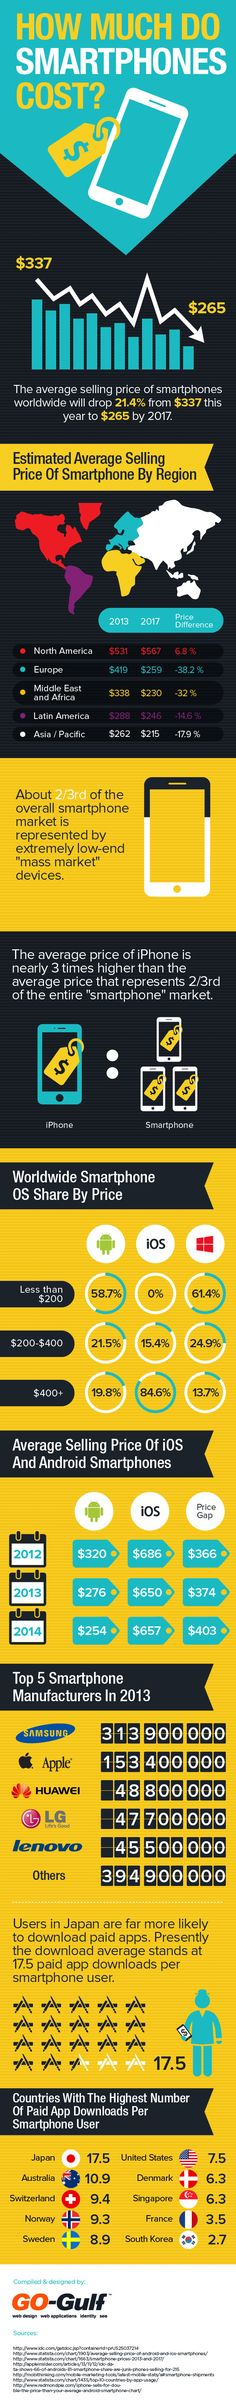 How Much Do Smartphones Cost #infographic #Smartphone #iPhone #AndroidSet